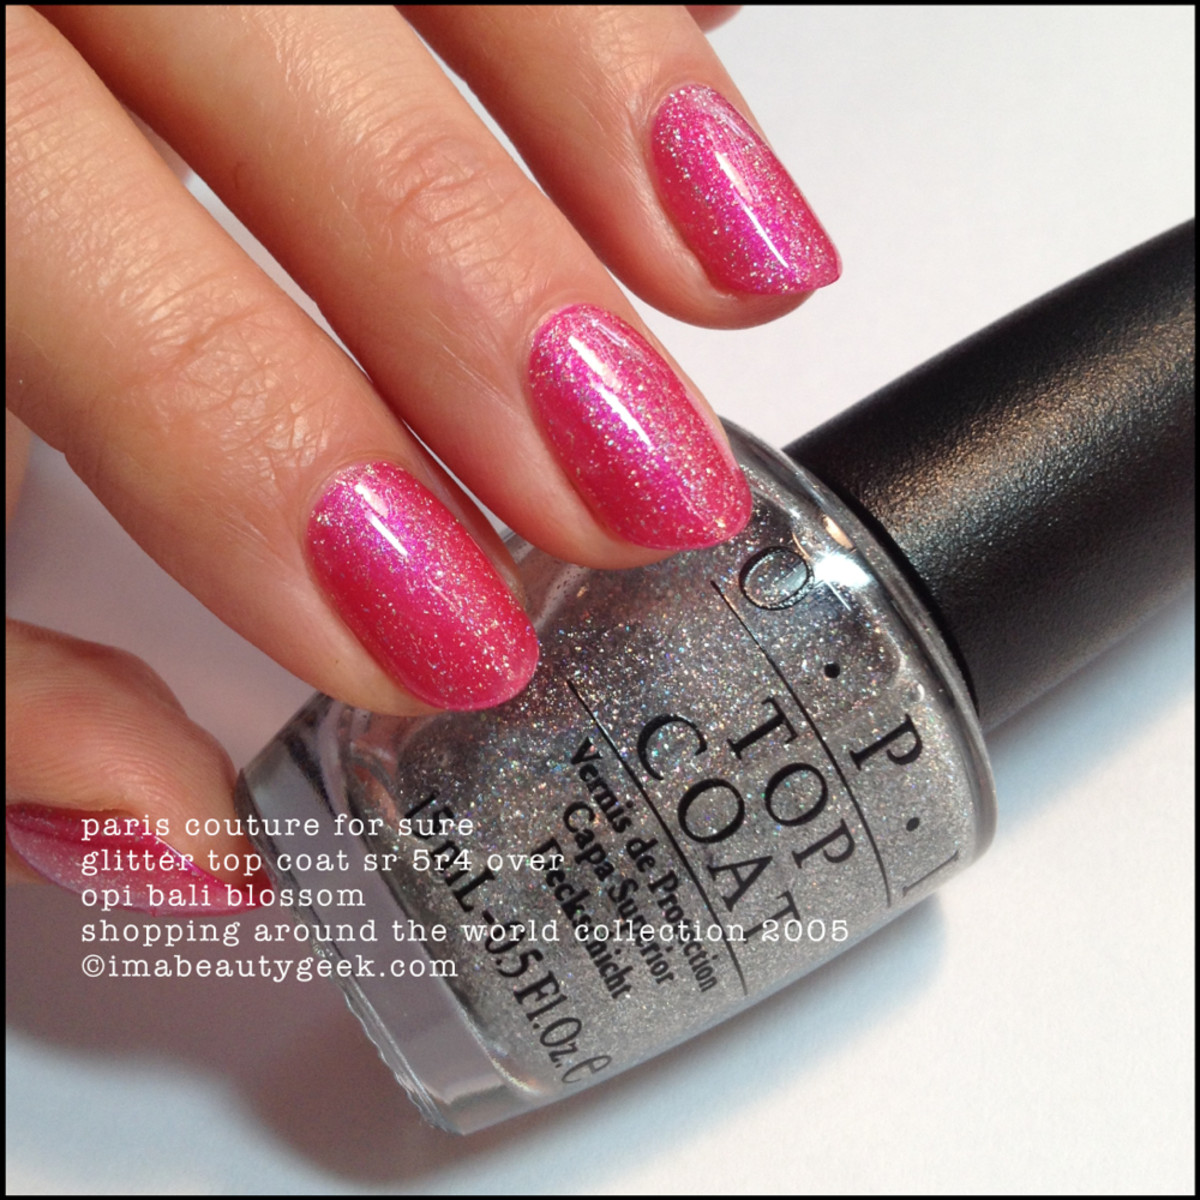 OPI Paris Couture for Sure Top Coat over OPI Bali Blossom